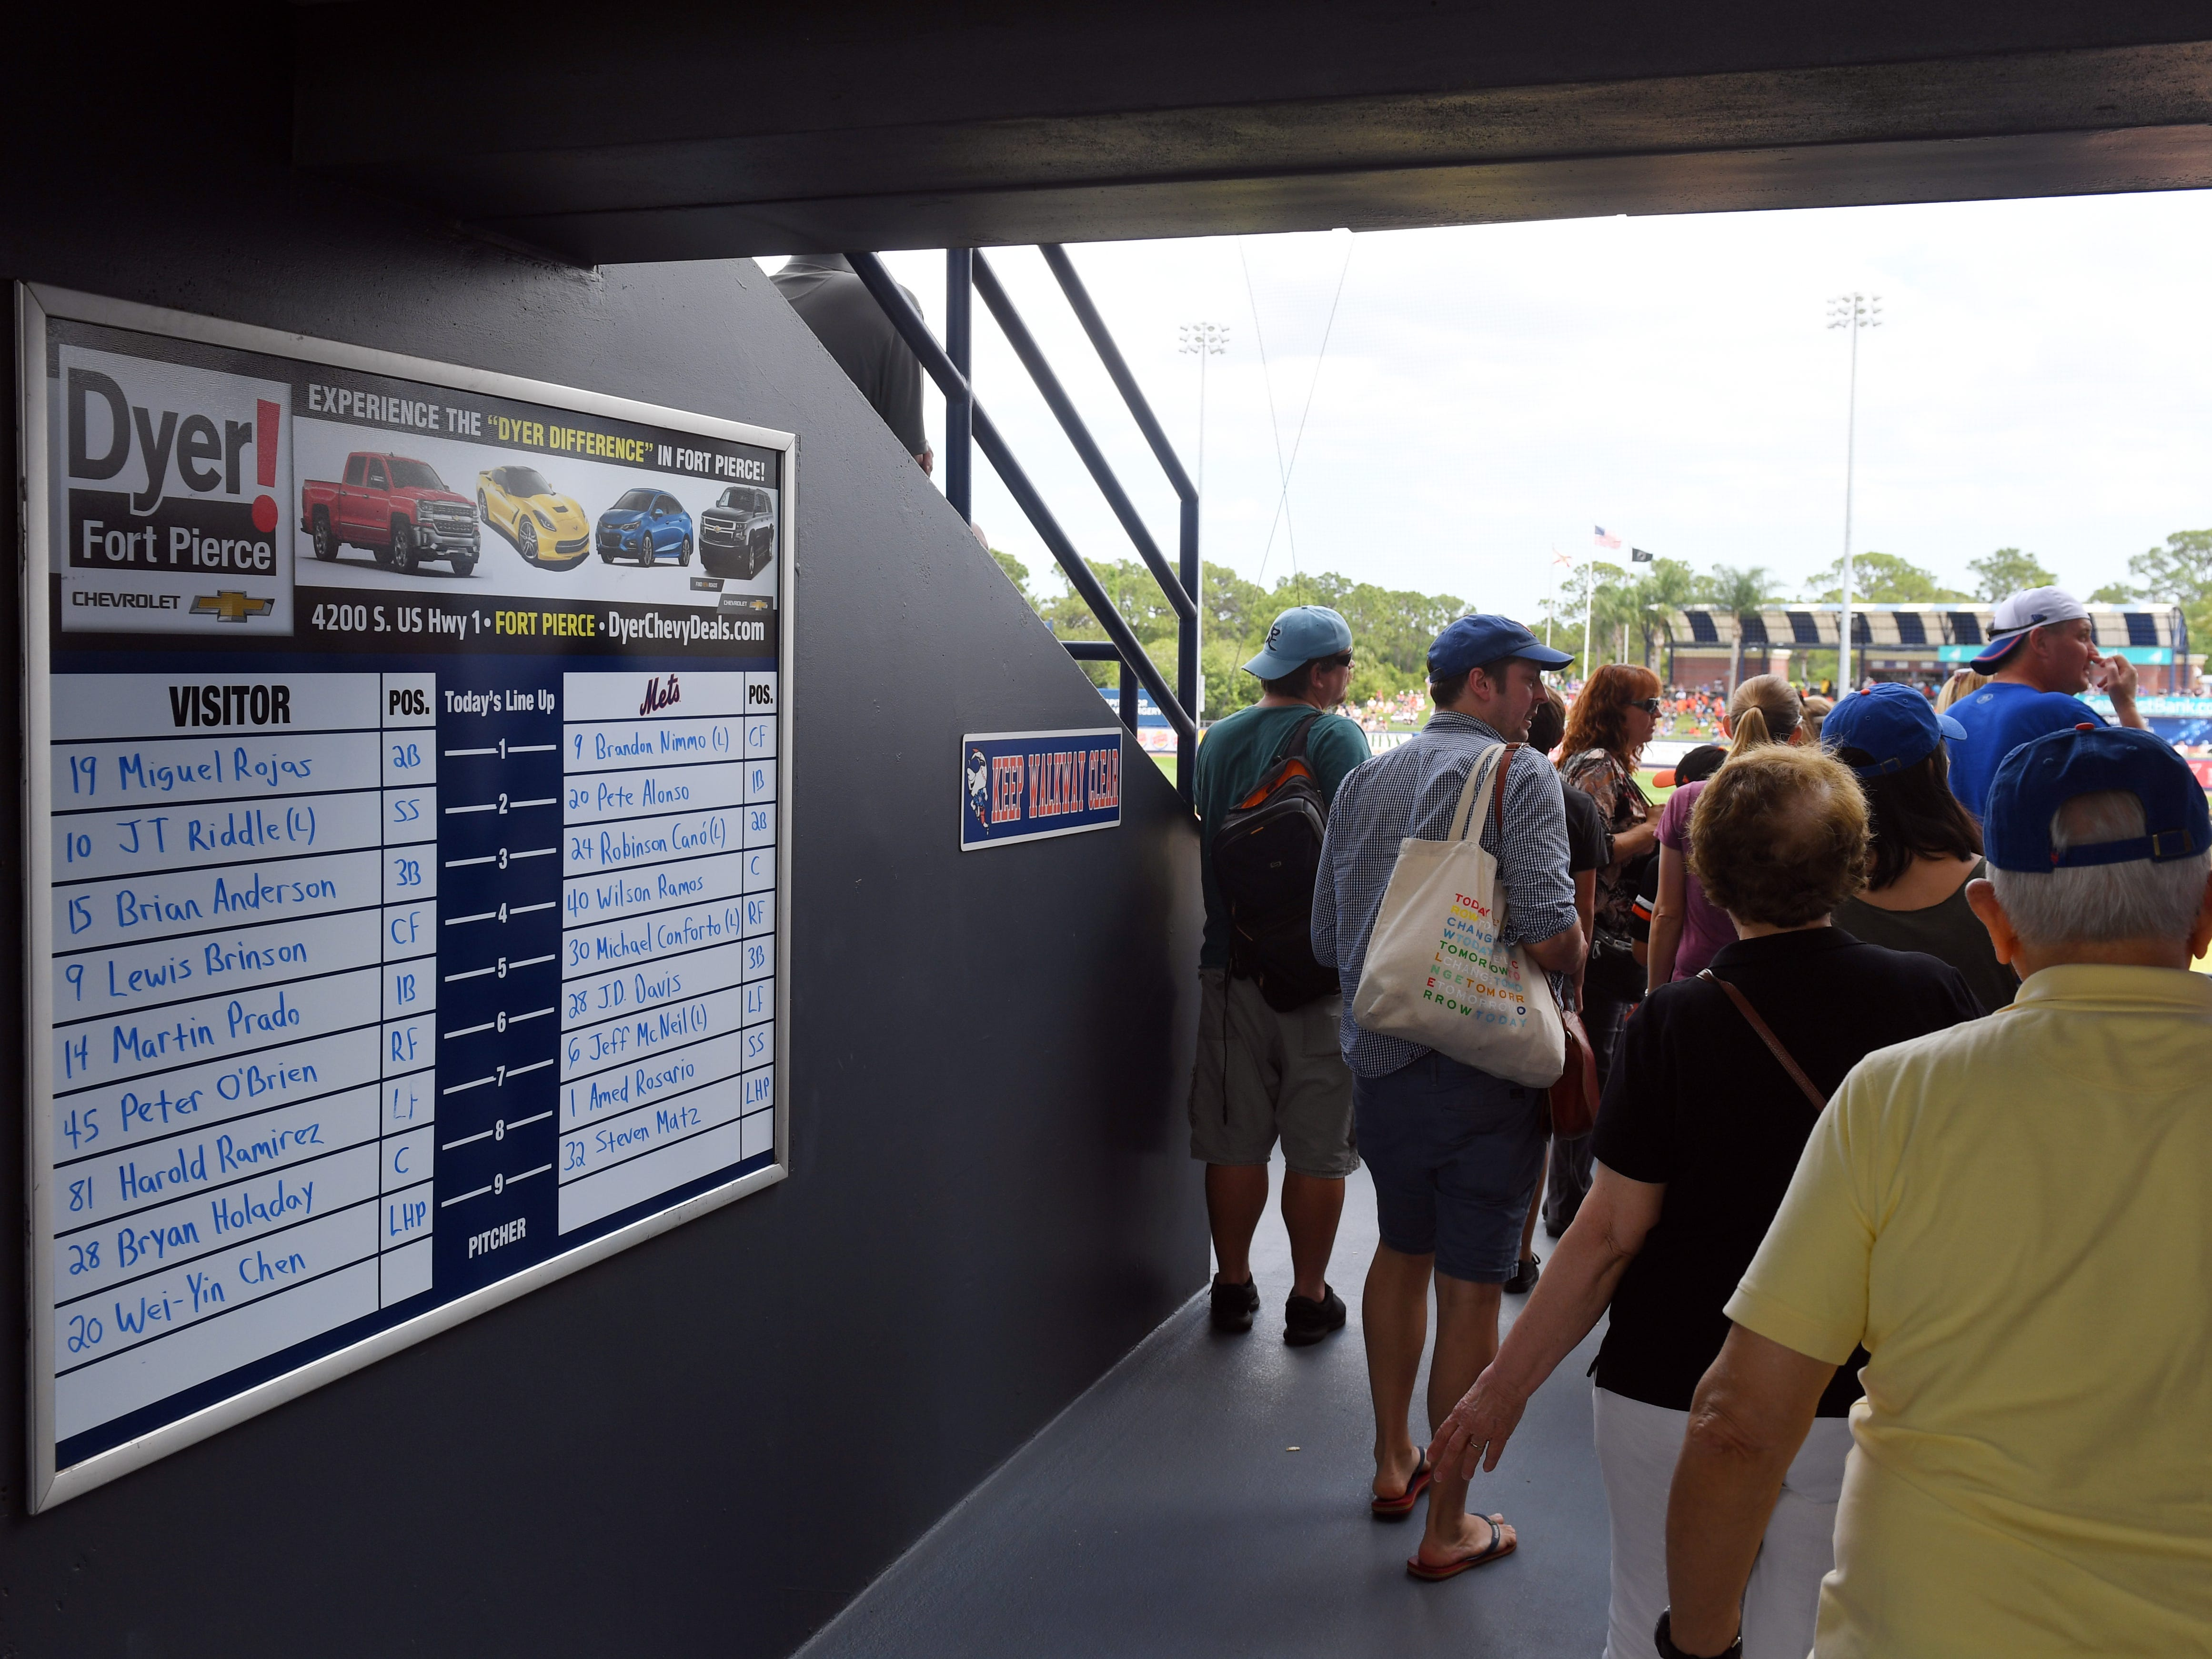 The New York Mets hosted the Miami Marlins on Thursday, March 21, 2019 for a spring training game at First Data Field in Port St. Lucie. Mets fans will only have two more chances, Friday at 1:10 p.m. and Sunday at 12:10 p.m., to see the Mets at First Data Field this week before the regular season begins.